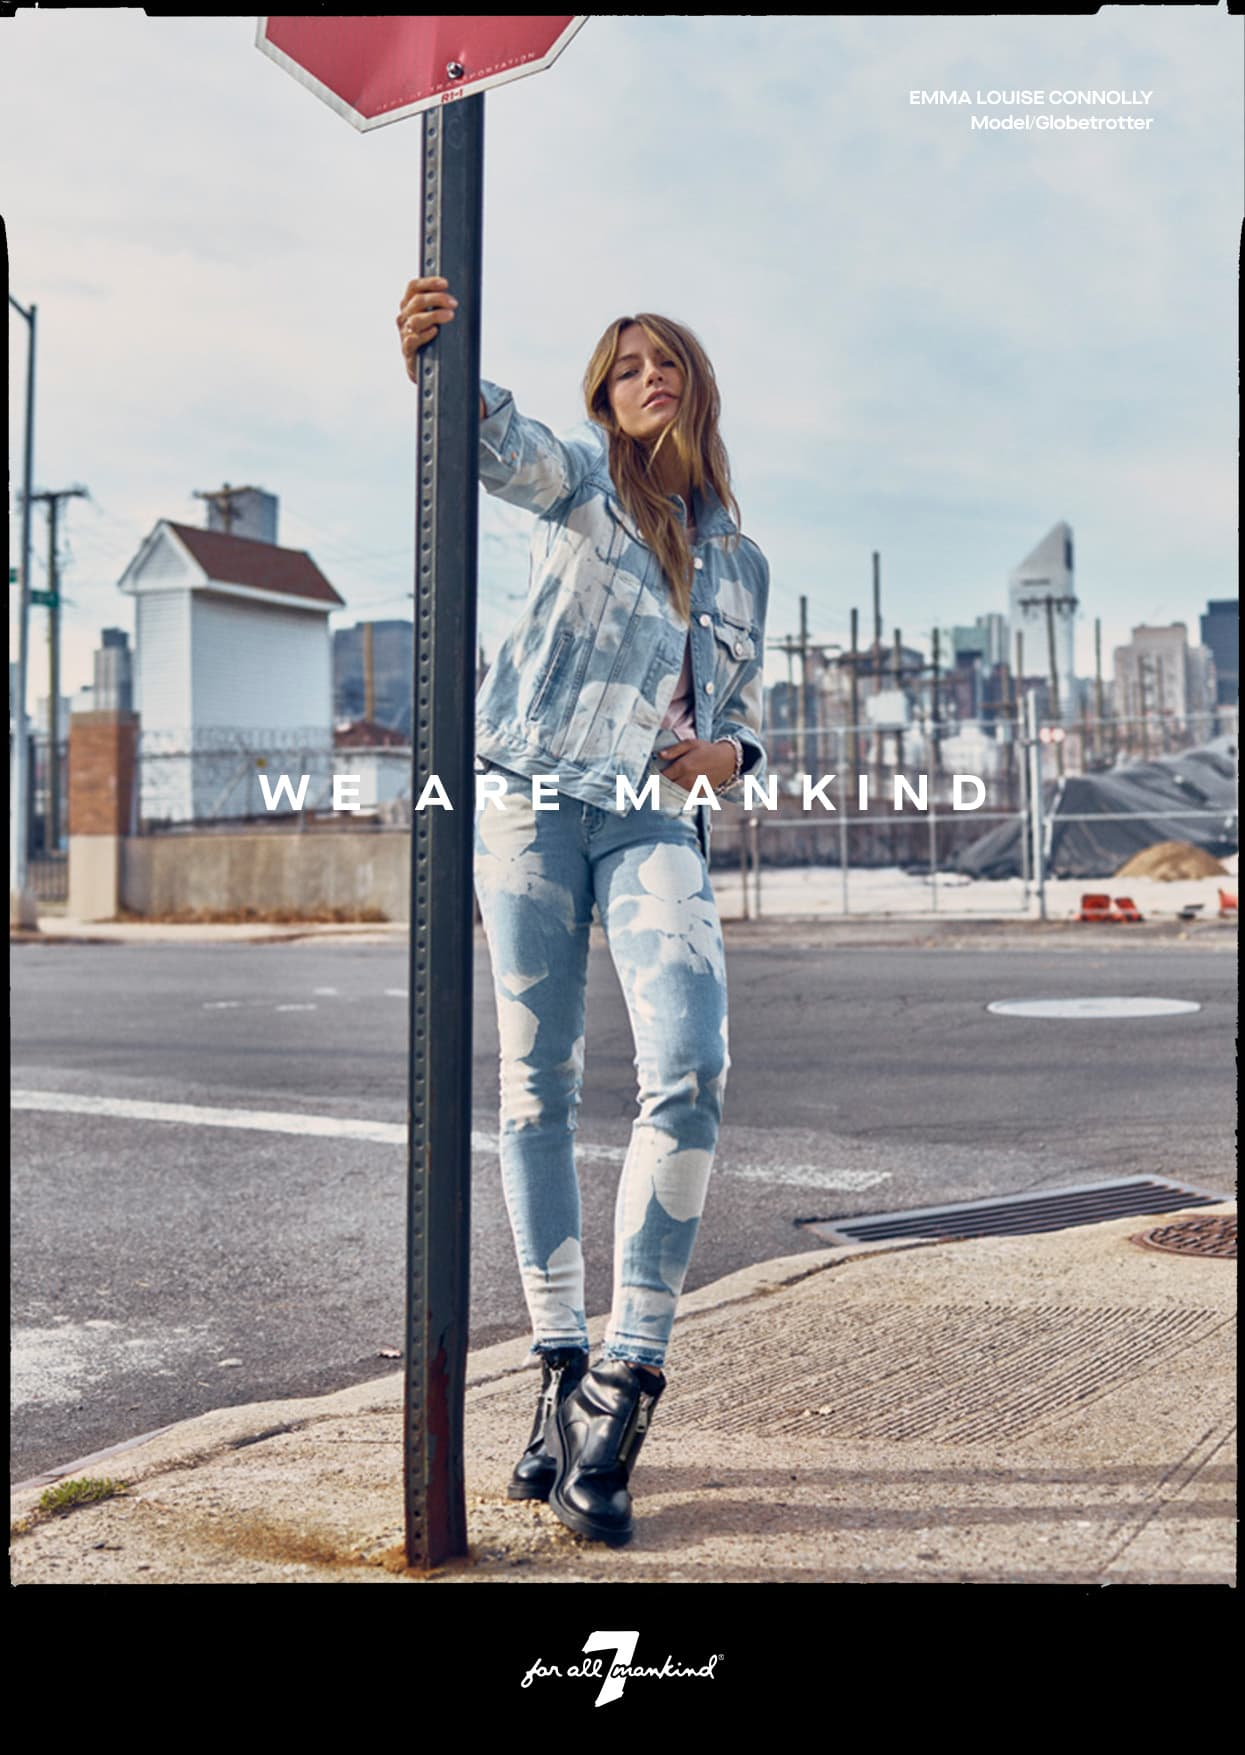 7 For All Mankind Brand Campaign